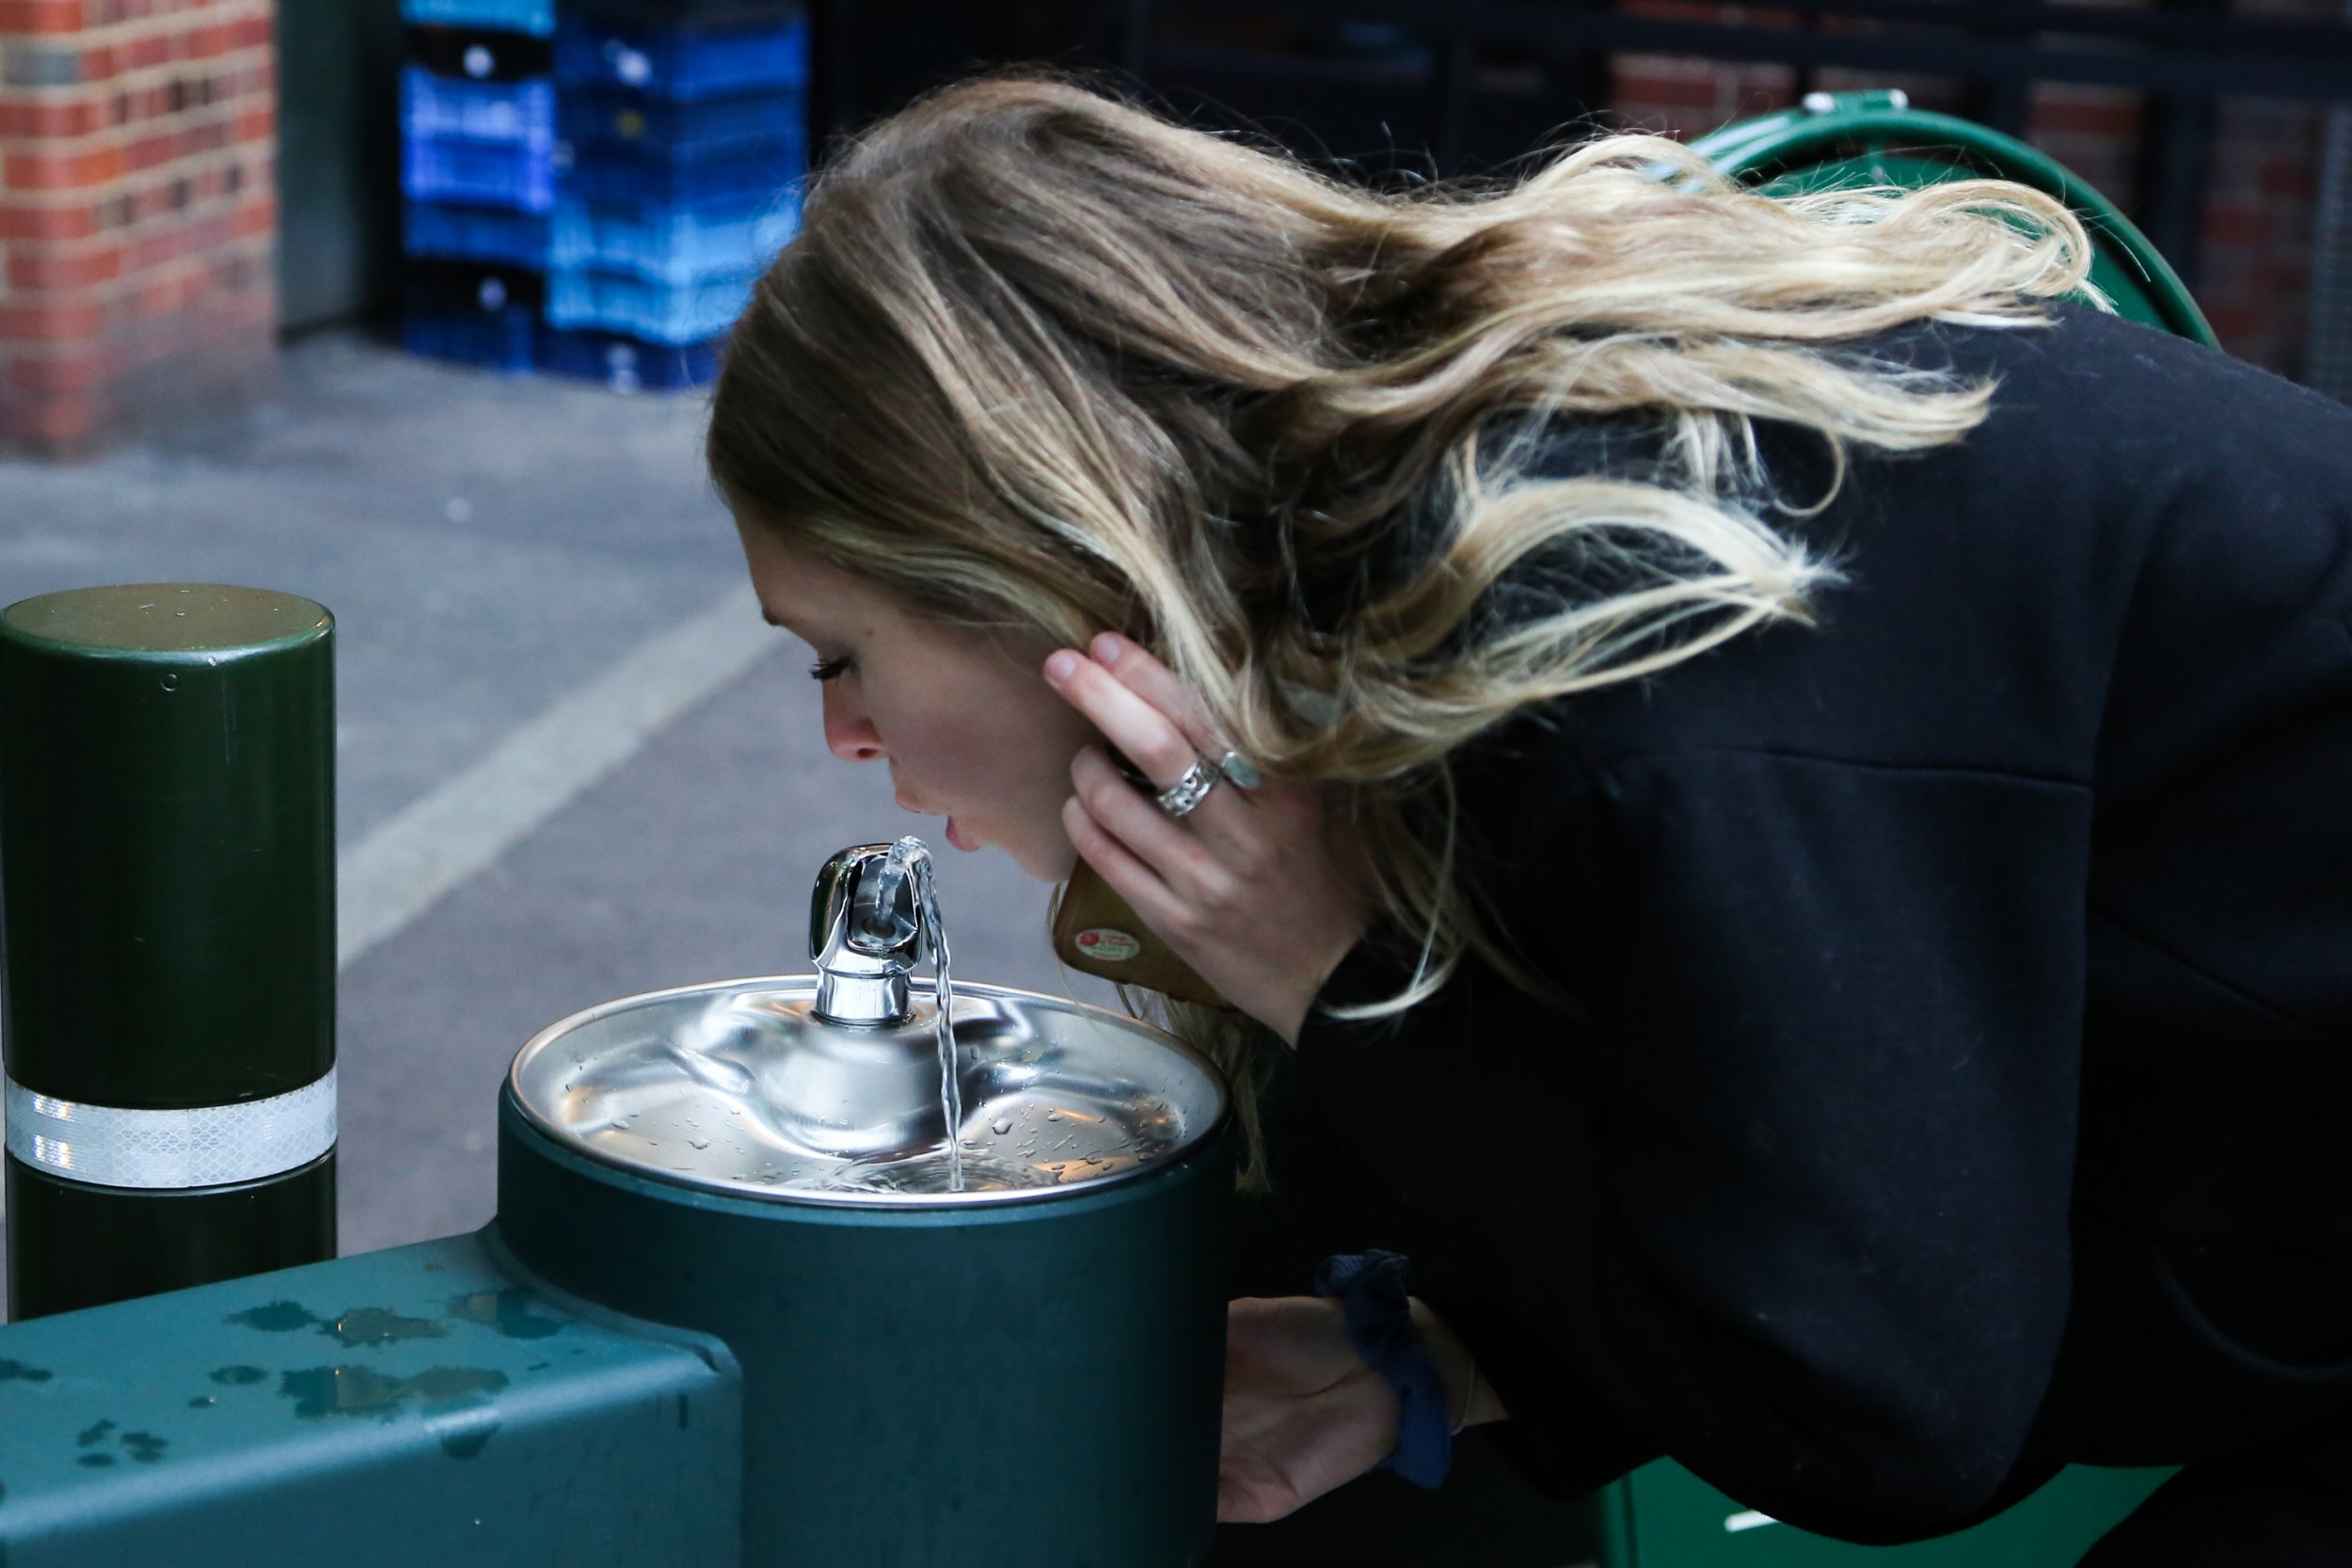 London to get 100 drinking fountains to cut waste plastic